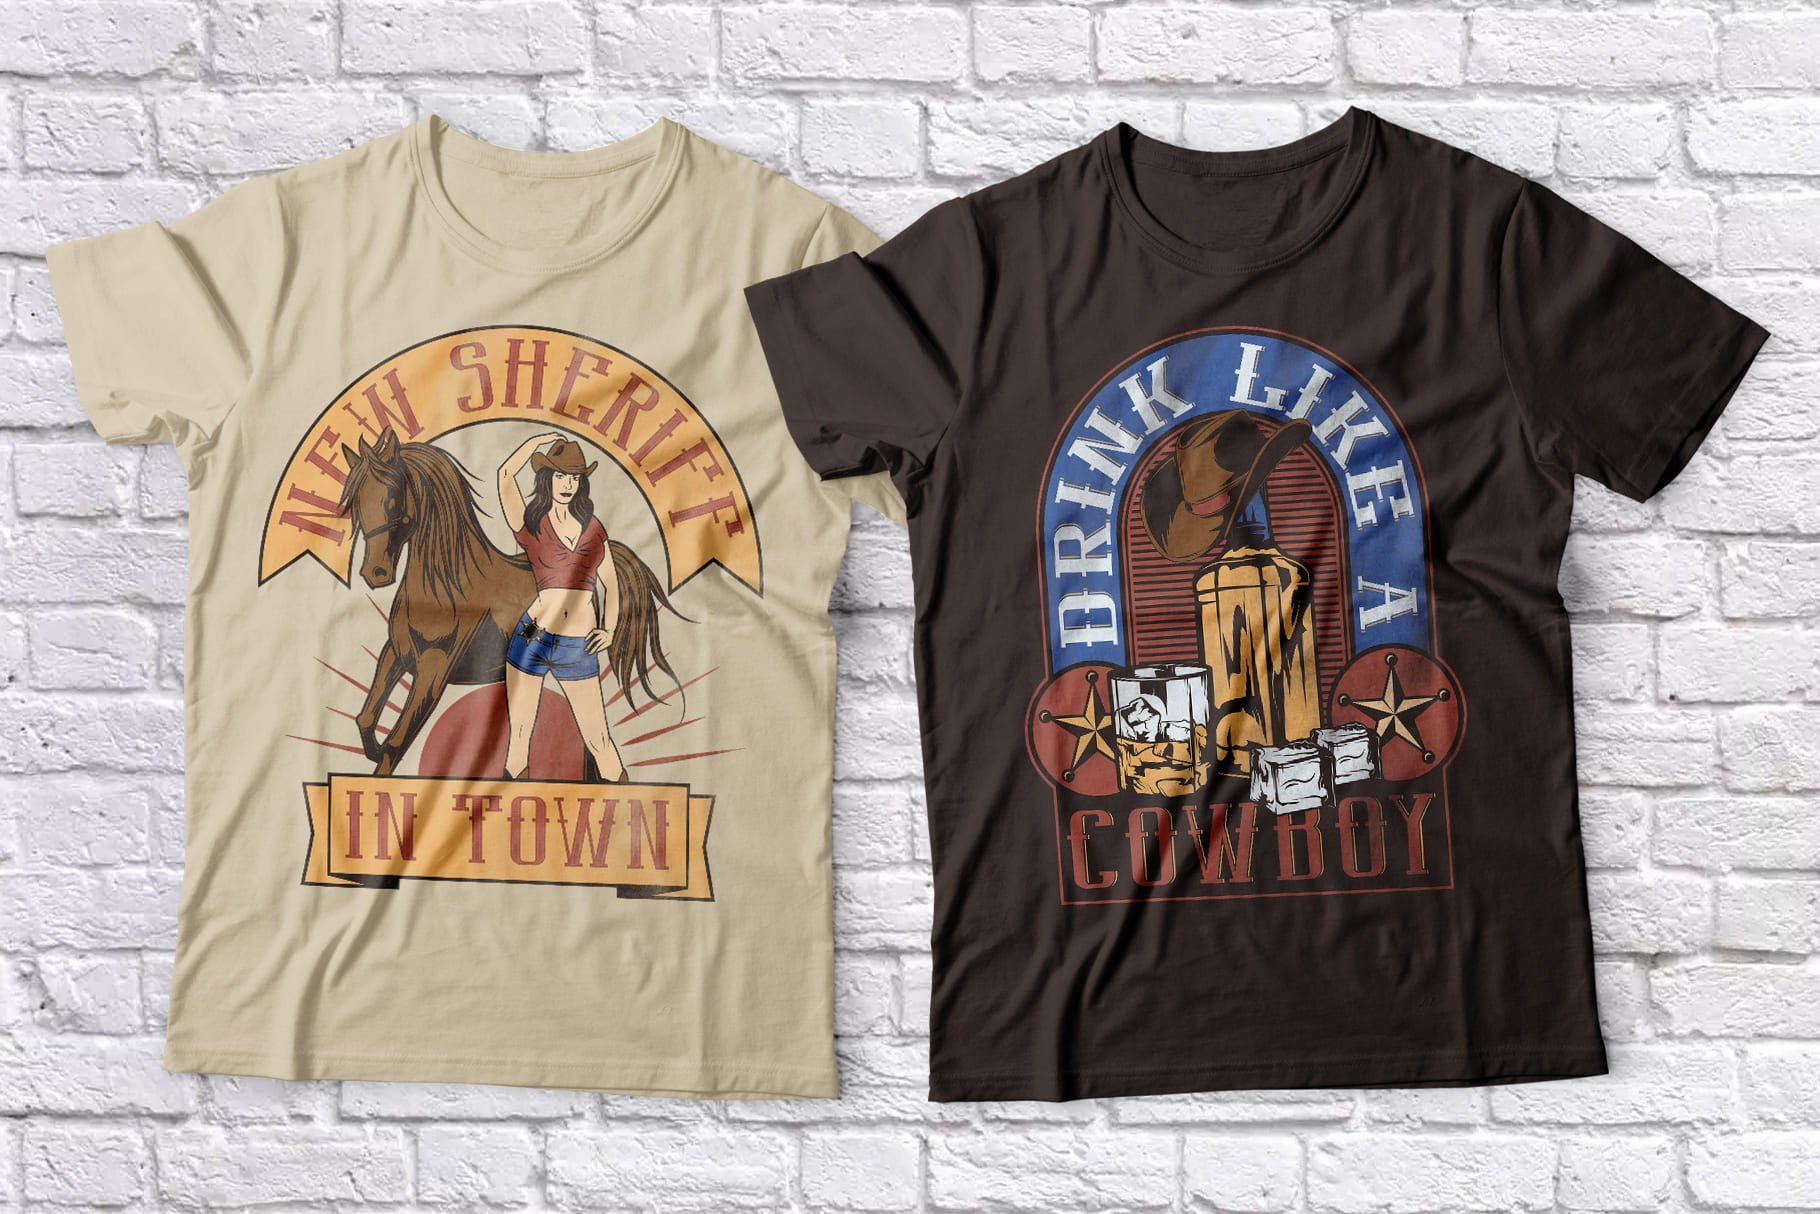 Vintage T-shirts with original images on the T-shirts.